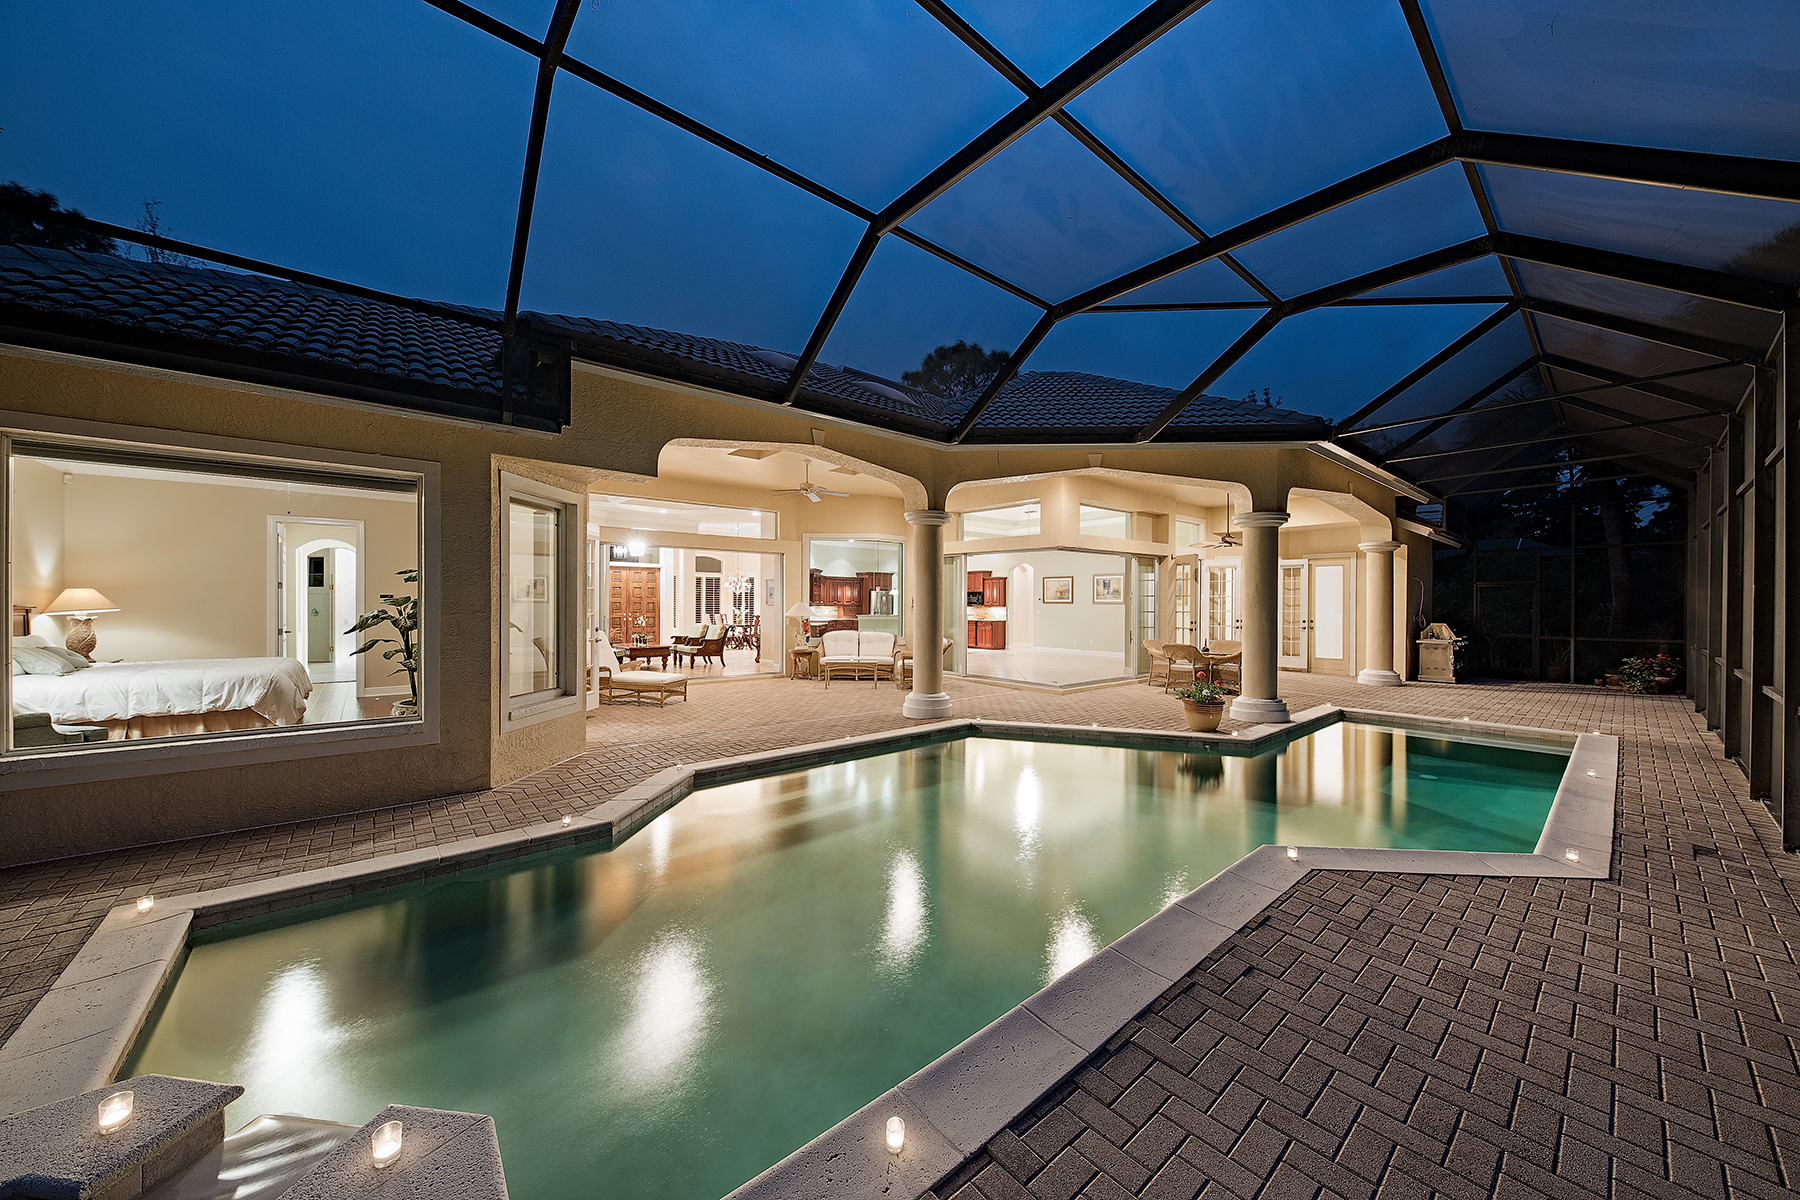 Single Family Home for Sale at COLLIERS RESERVE 850 Barcarmil Way, Naples, Florida 34110 United States